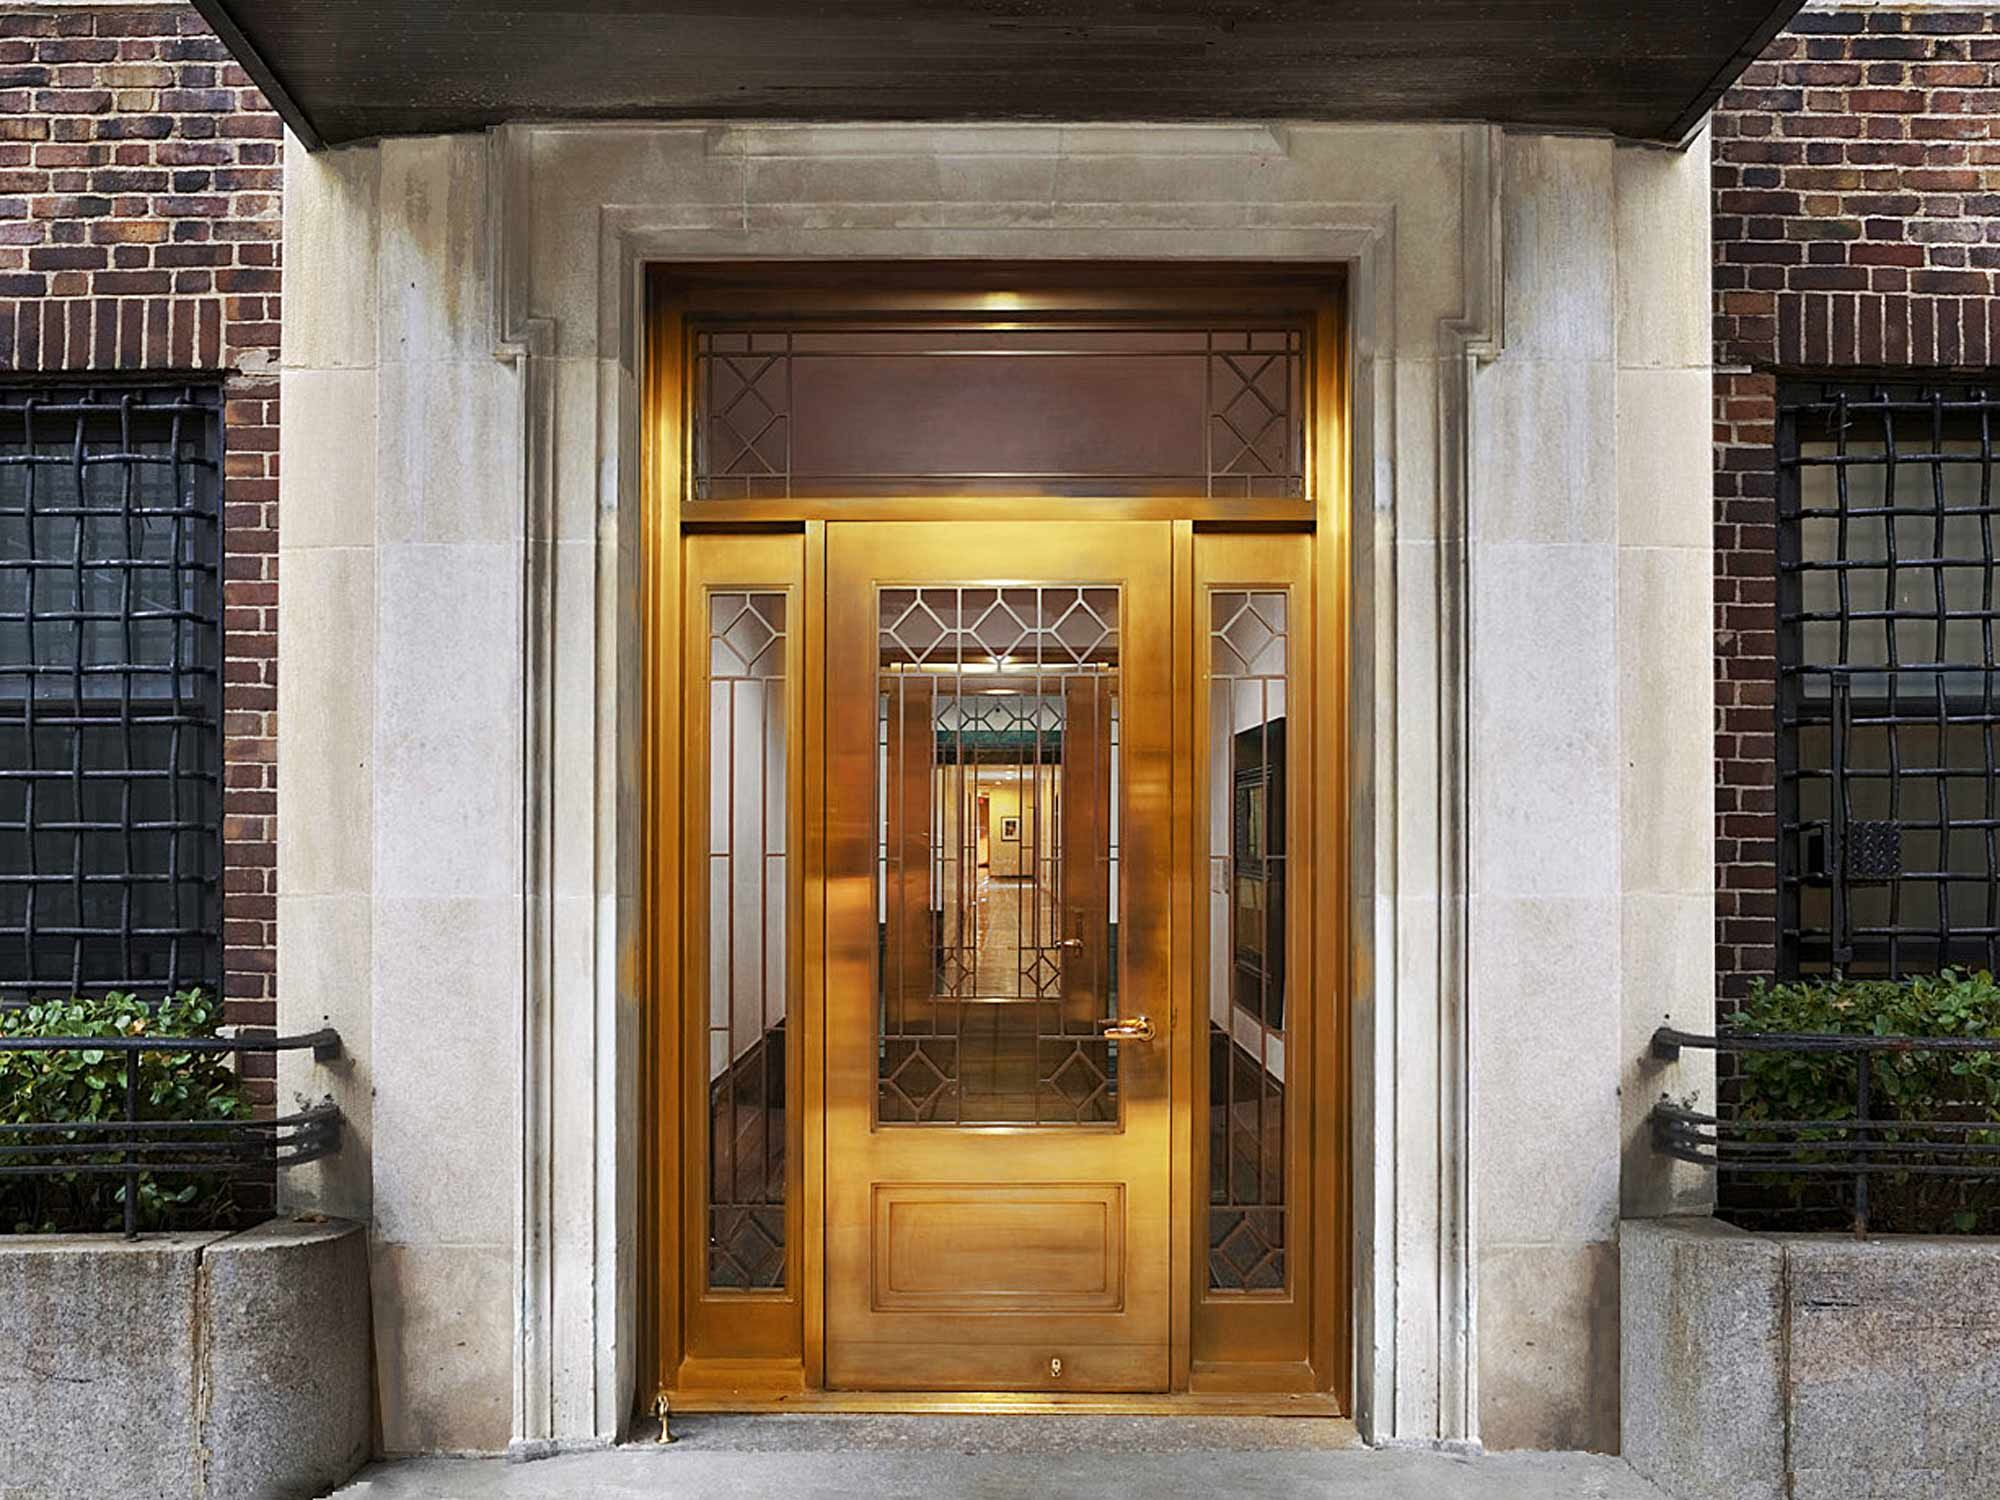 Nyc Apartment Building Entrance Google Search Lobby Hero